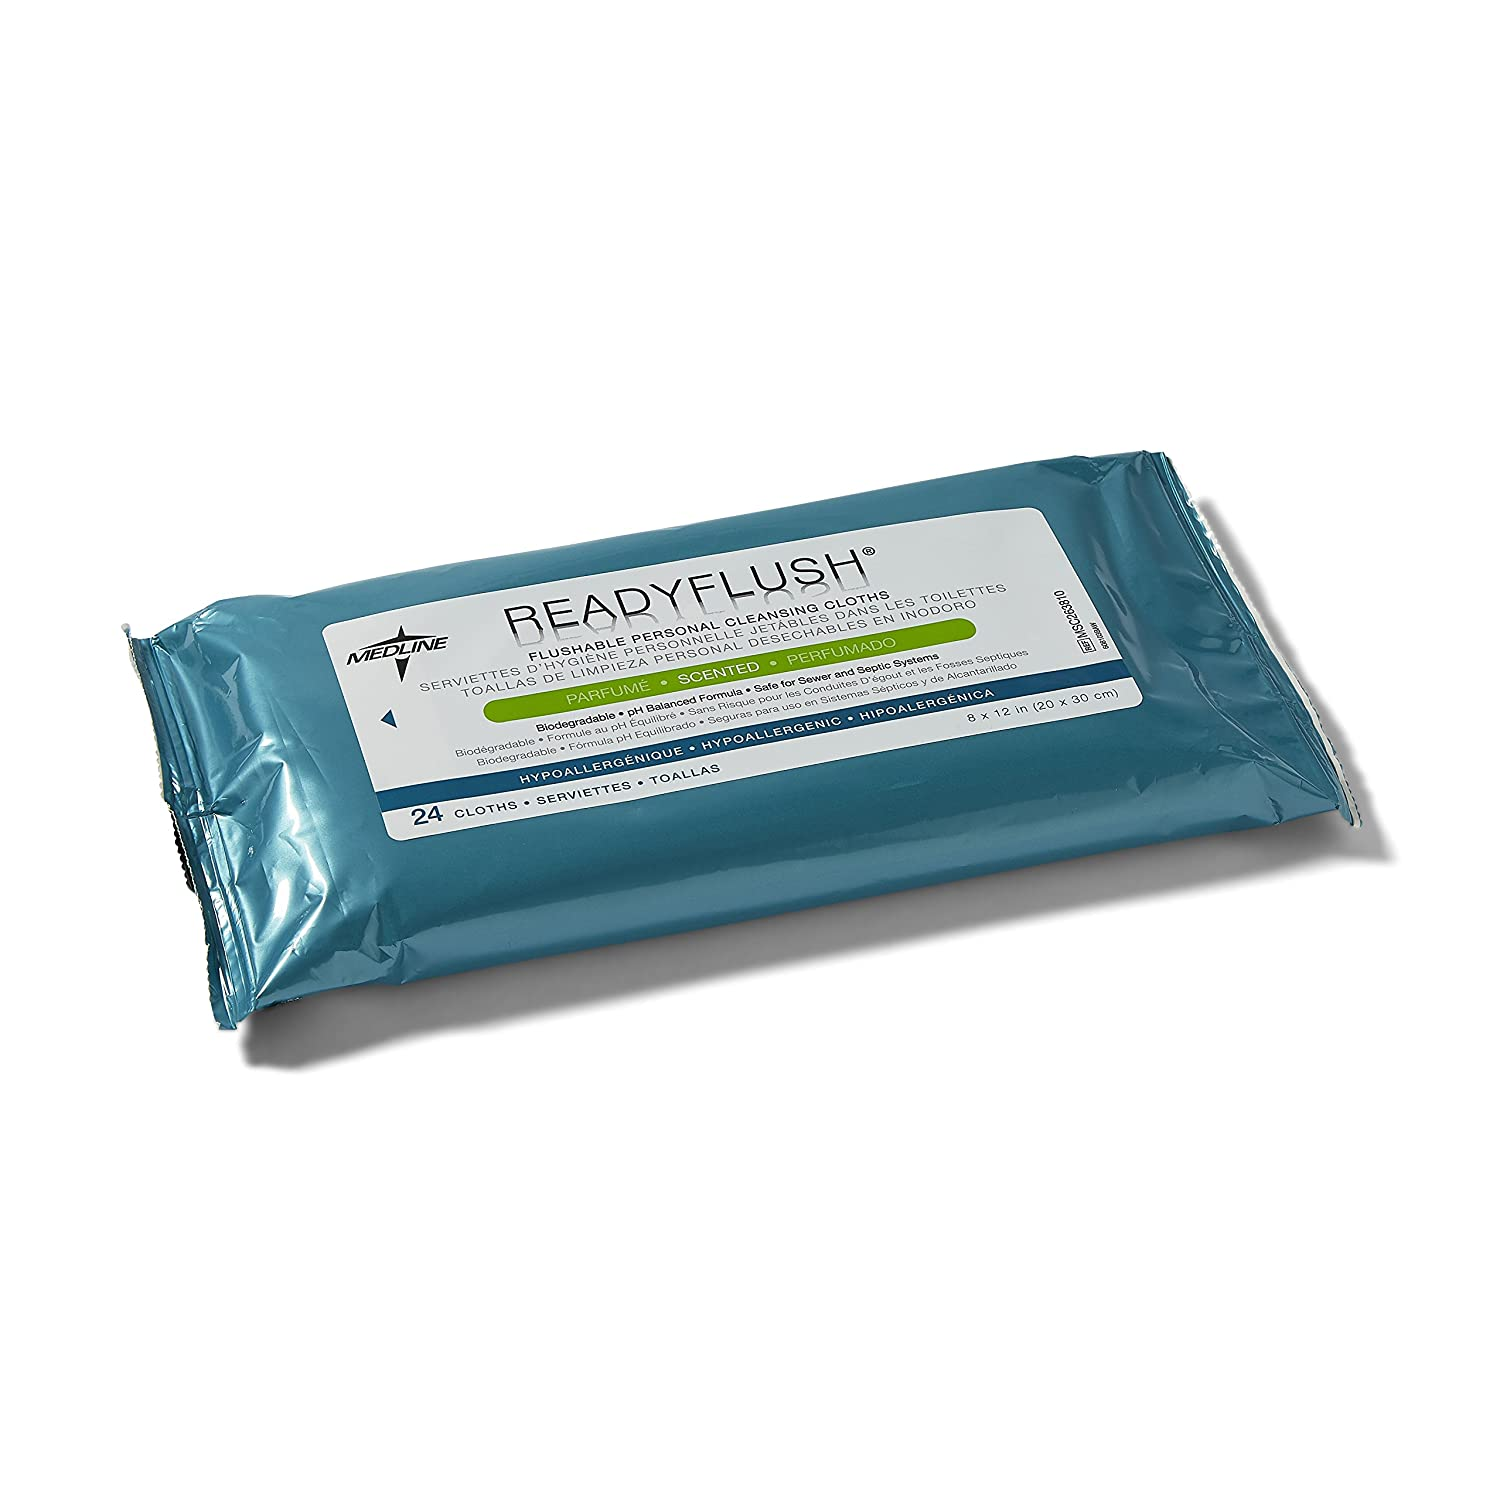 Amazon.com: Medline MSC263810 ReadyFlush Biodegradable Flushable Wipes (Case of 24): Industrial & Scientific